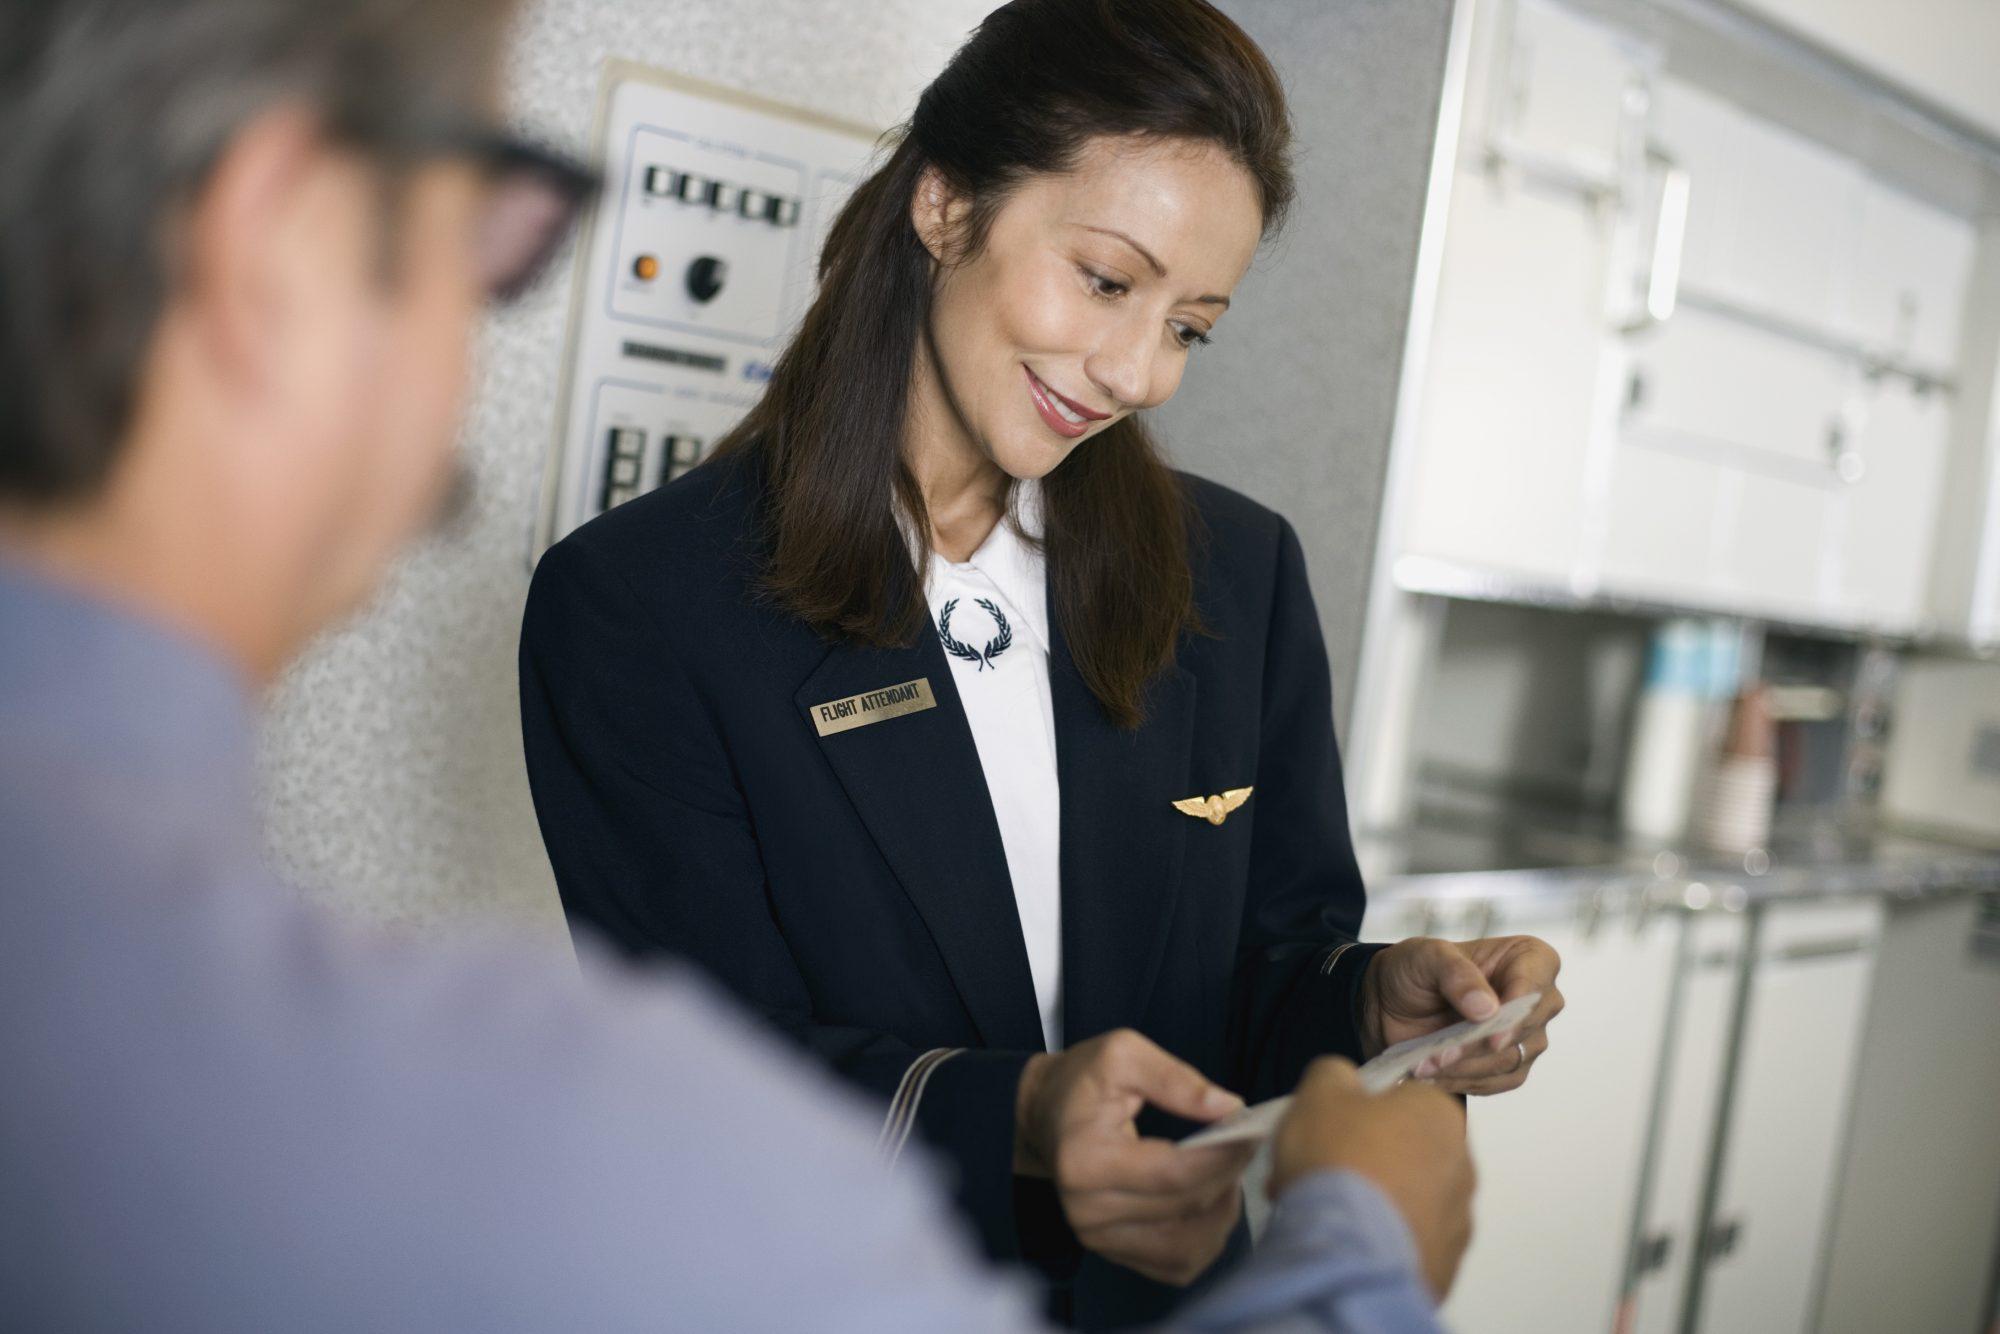 Flight Attendant Checking Boarding Pass